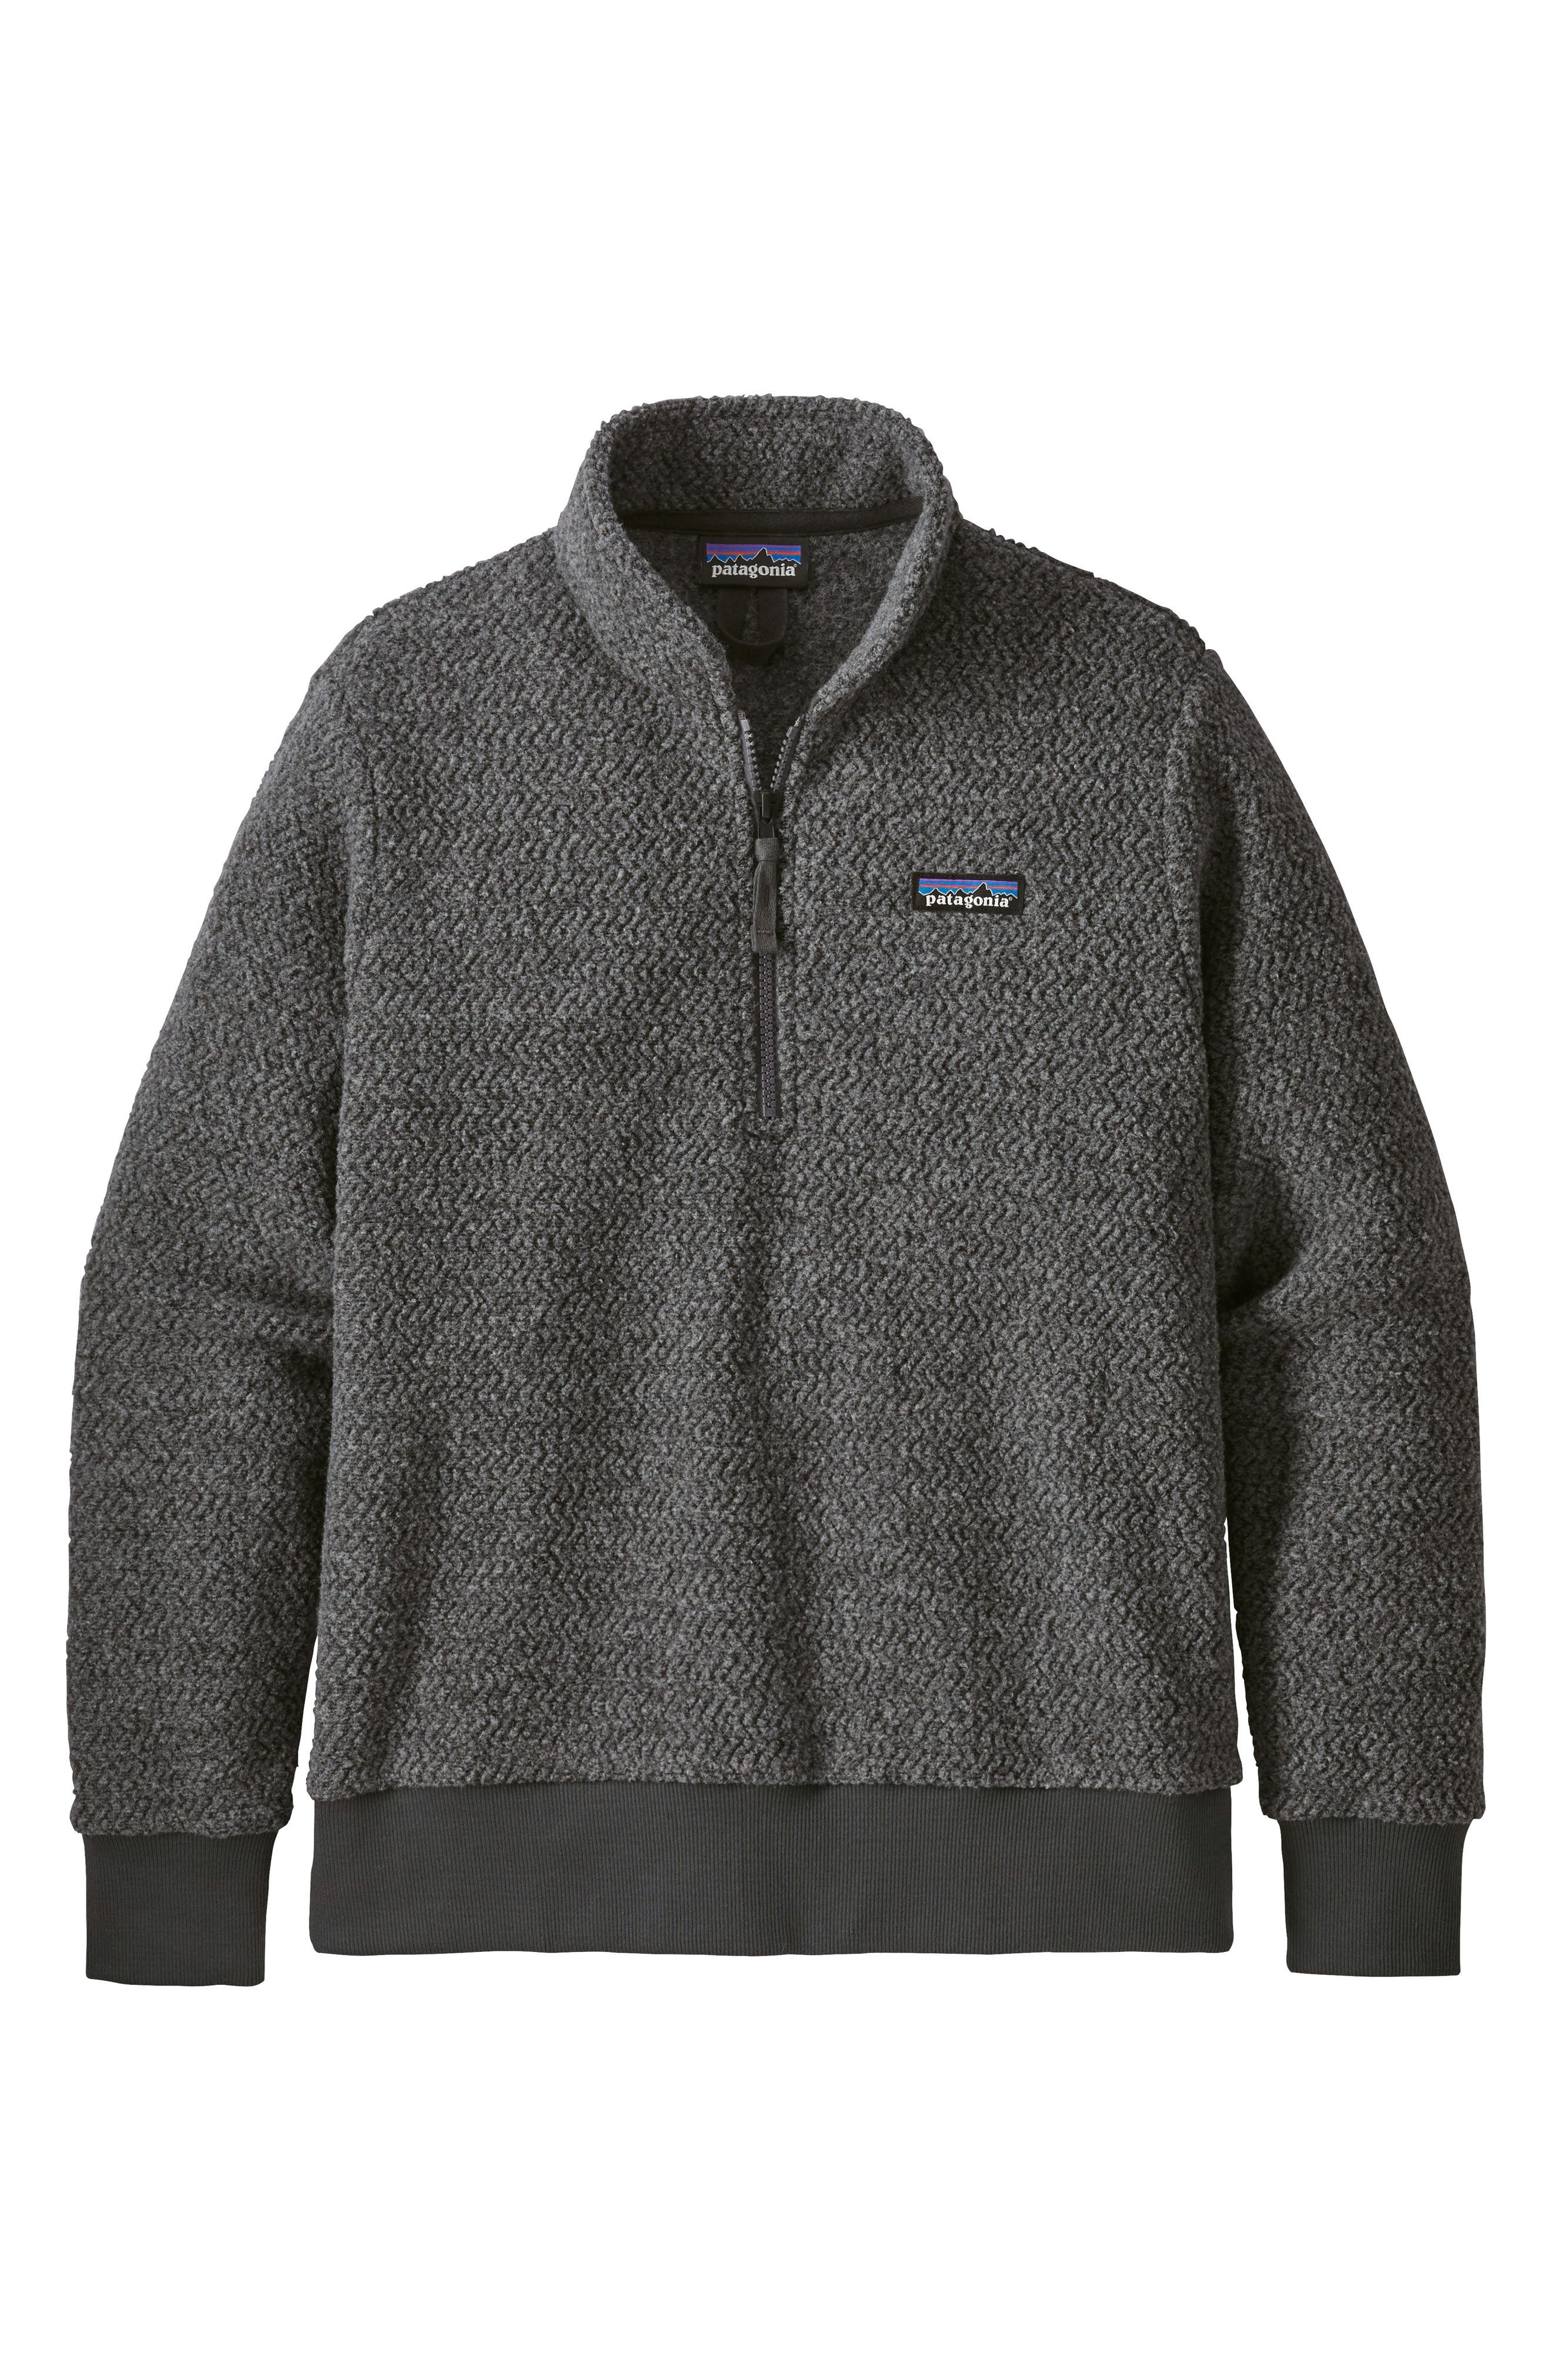 Woolyester Fleece Quarter Zip Pullover,                             Main thumbnail 1, color,                             FORGE GREY